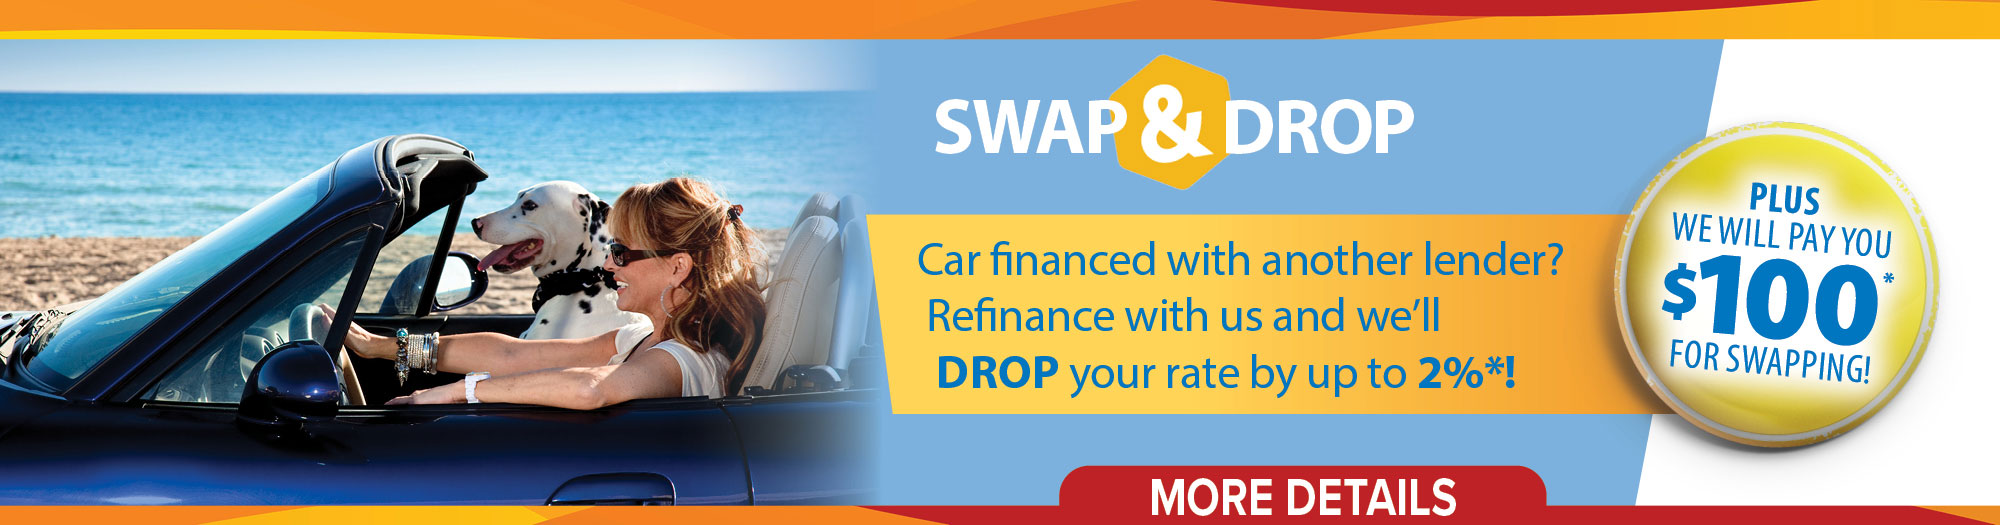 Swap your car loan financed elsewhere to JetStream & we will  Drop your interest rate by up to 2%